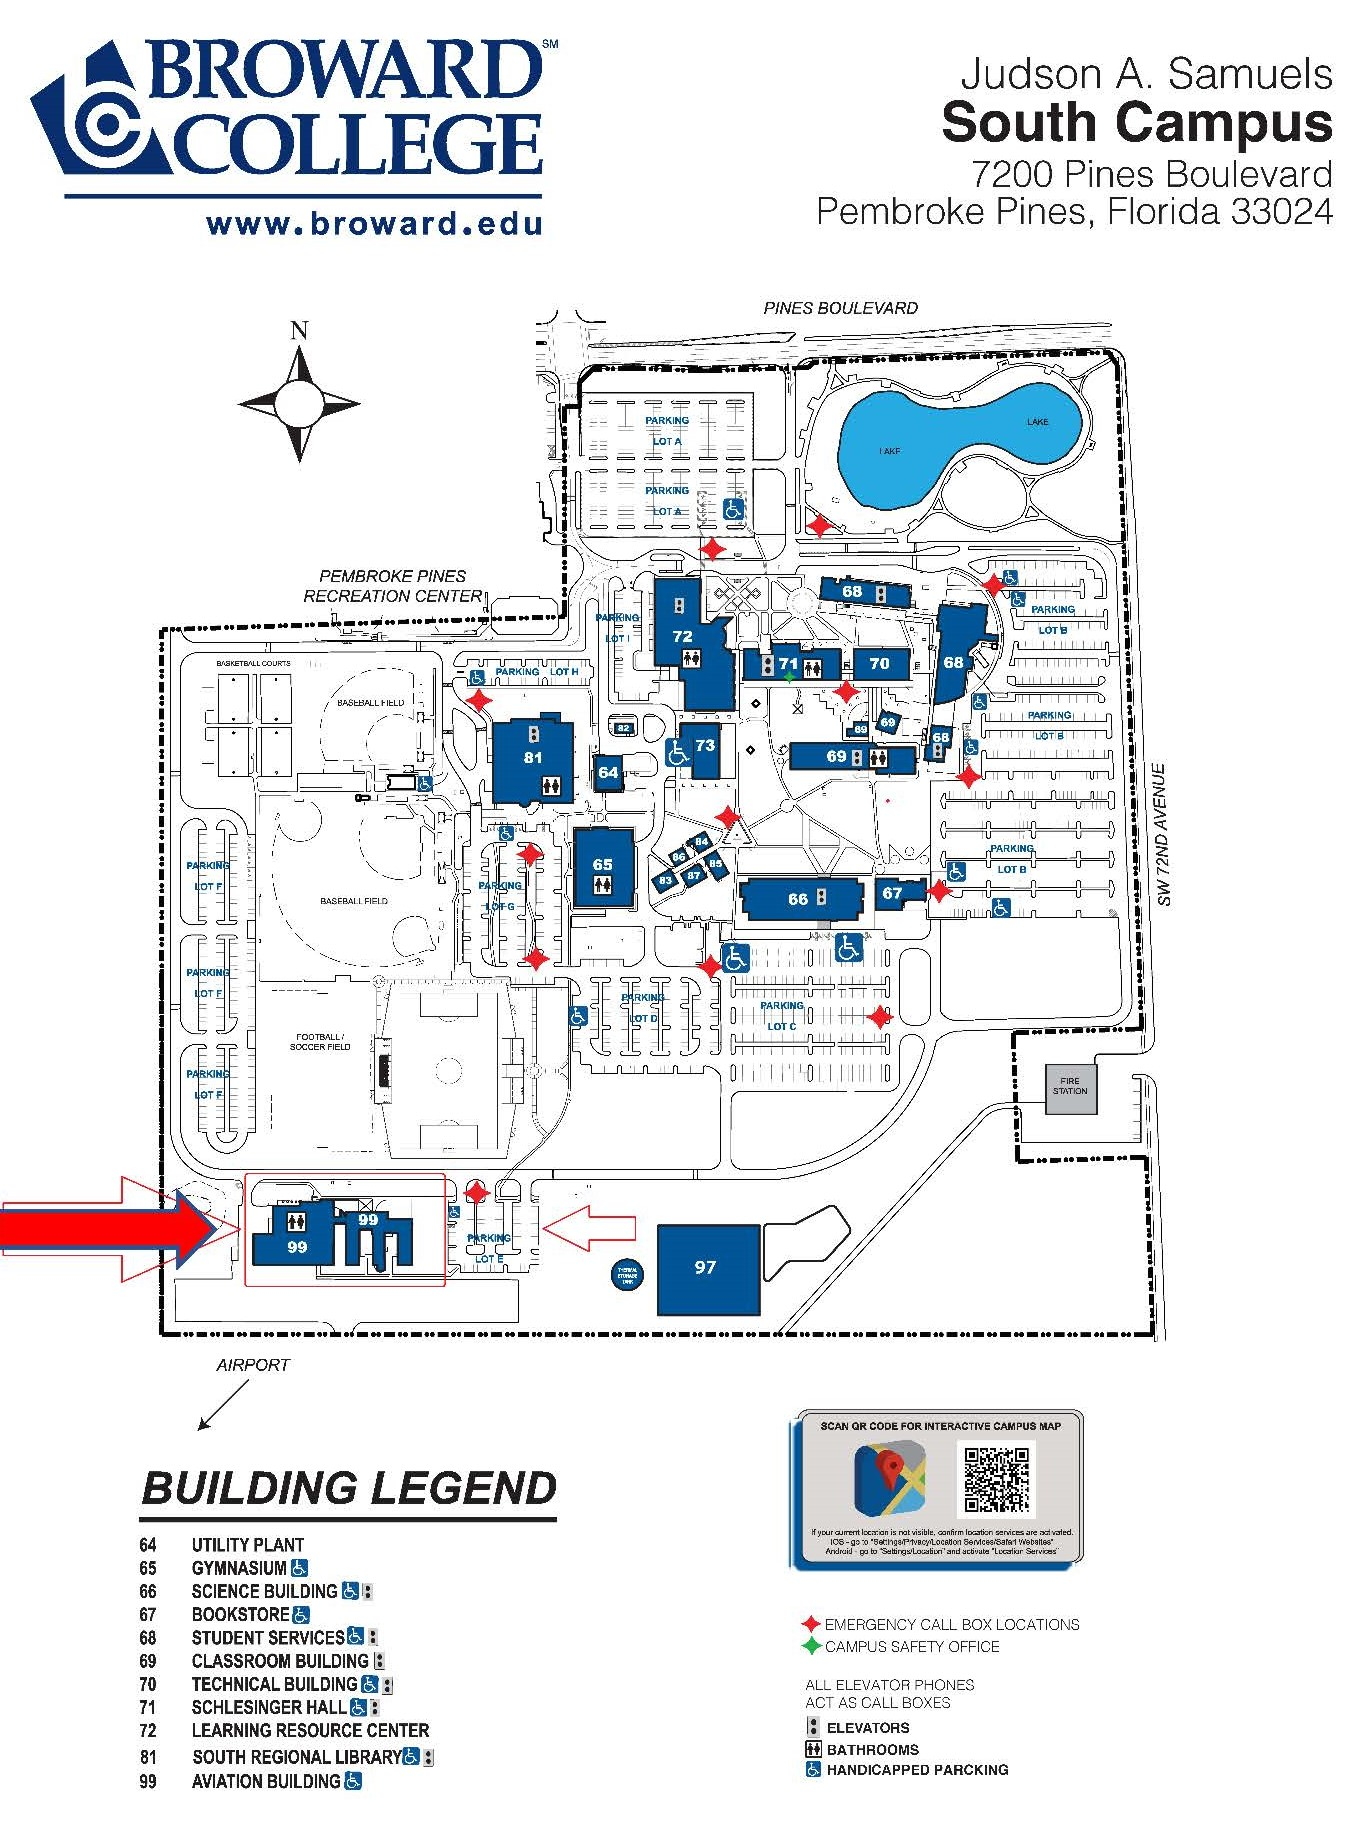 broward college davie campus map The Alliance Alliance Governor Council Meeting June 26 2018 Invitation Only broward college davie campus map